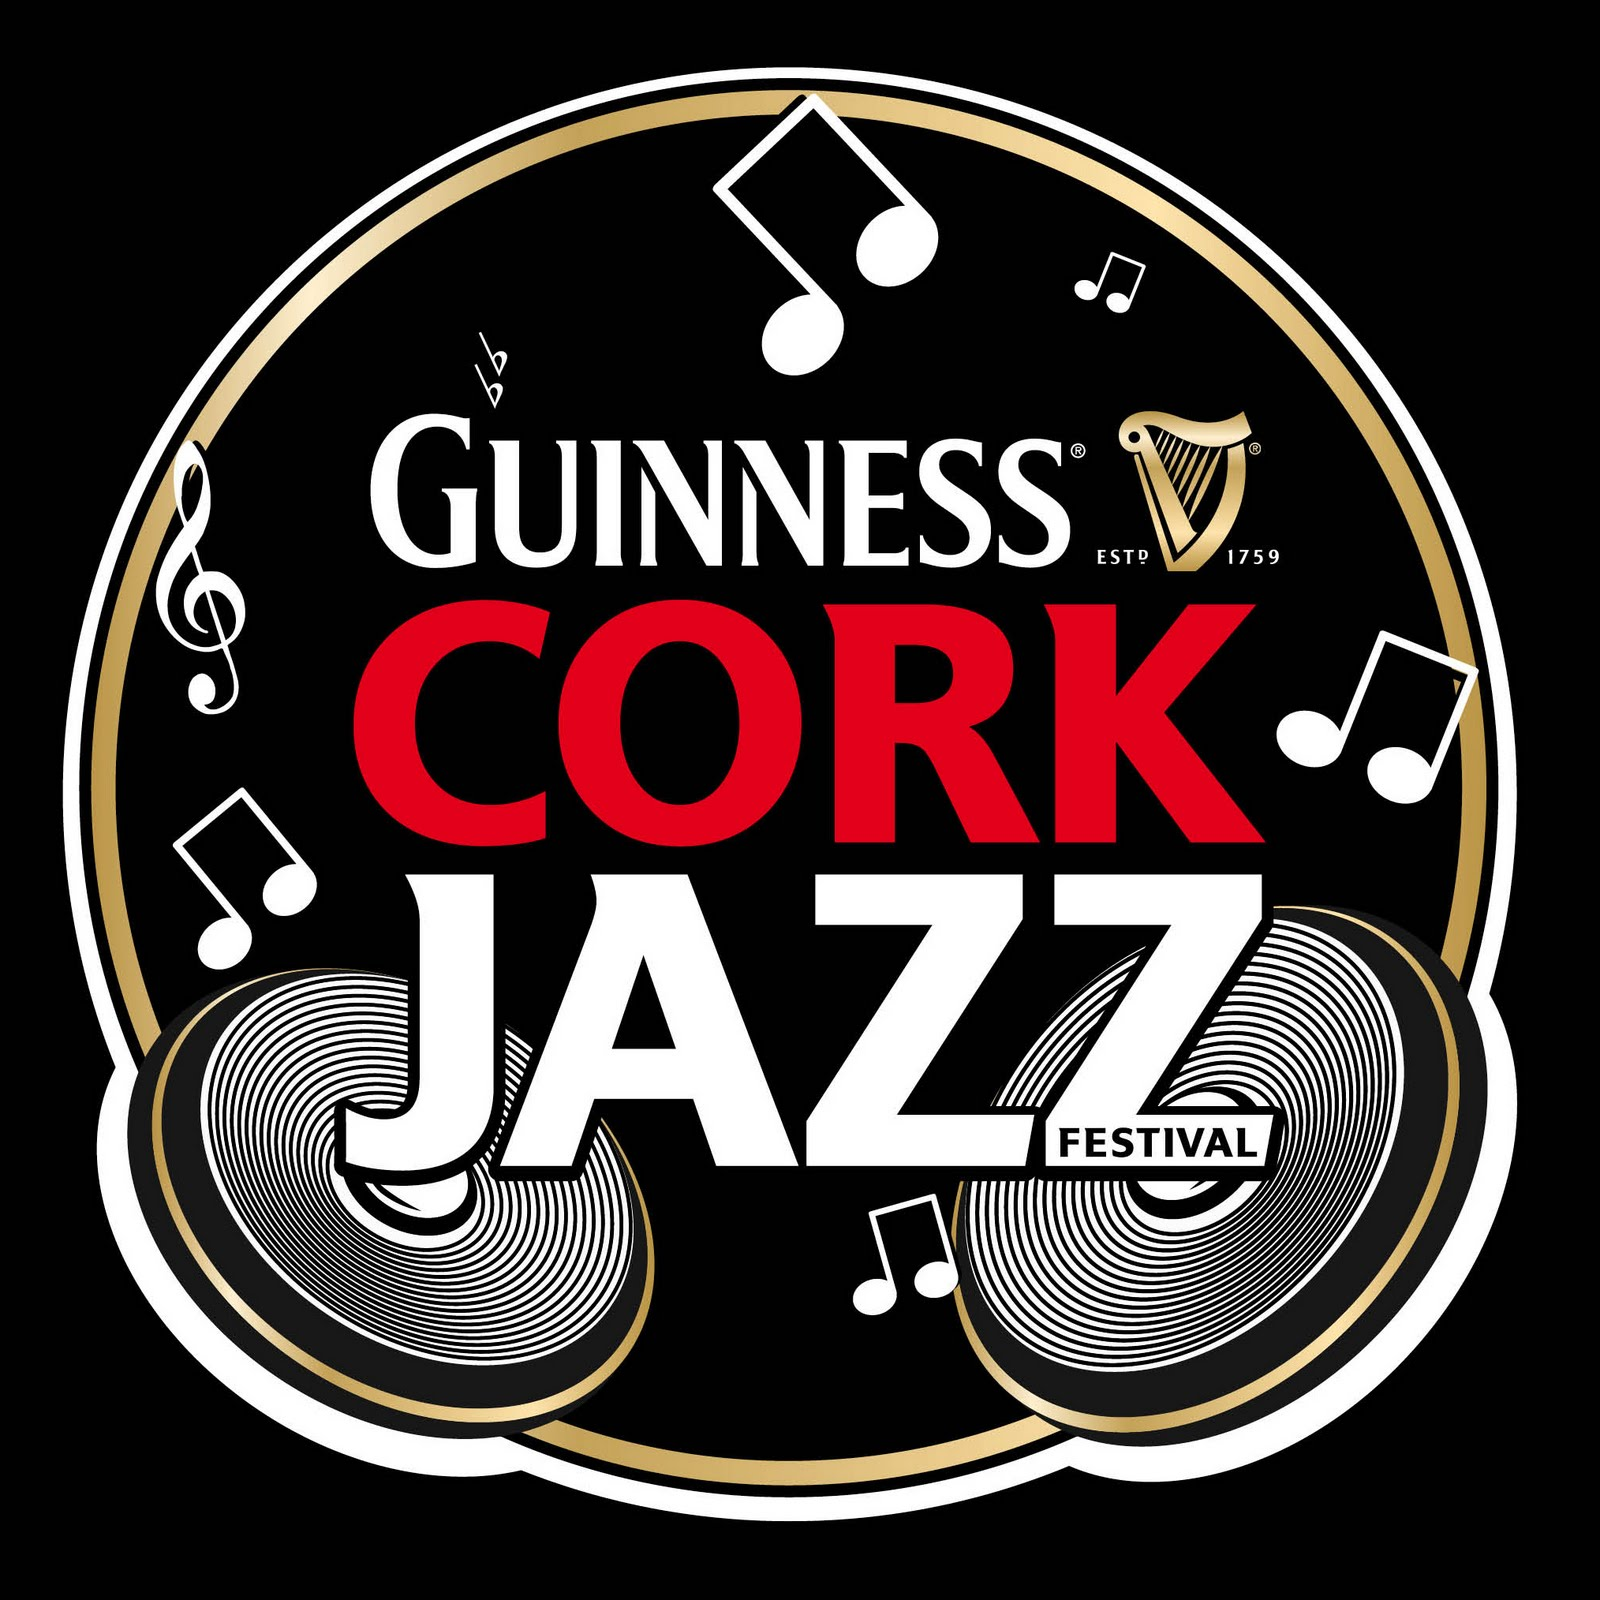 Cork jazz festival 2012 brochure